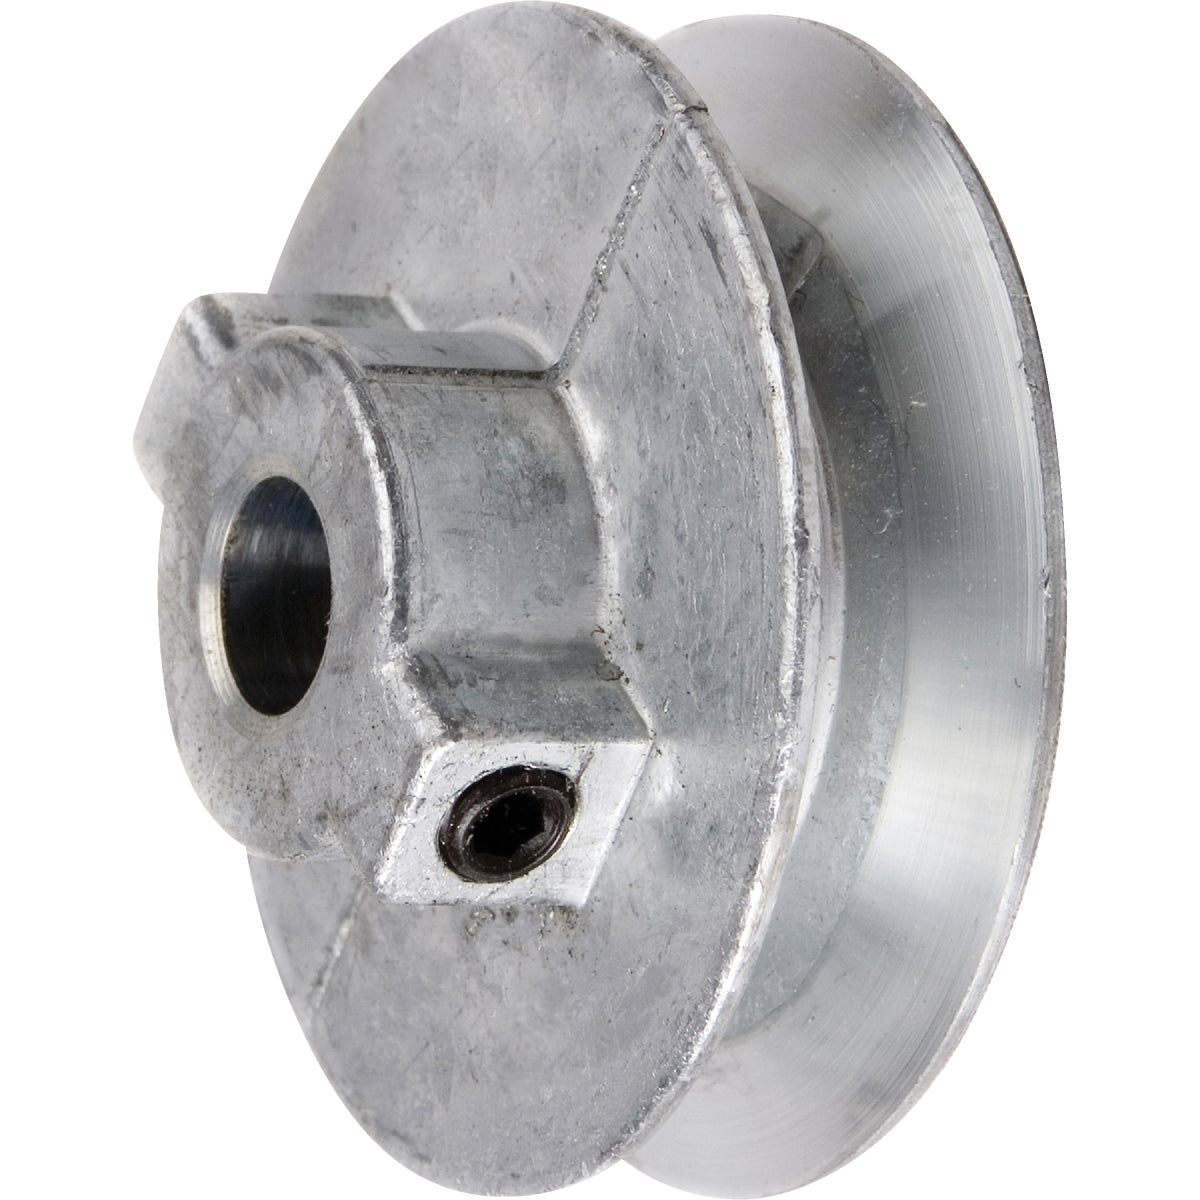 4-1/2X3/4 PULLEY - 450A7 by Chicago Die Casting